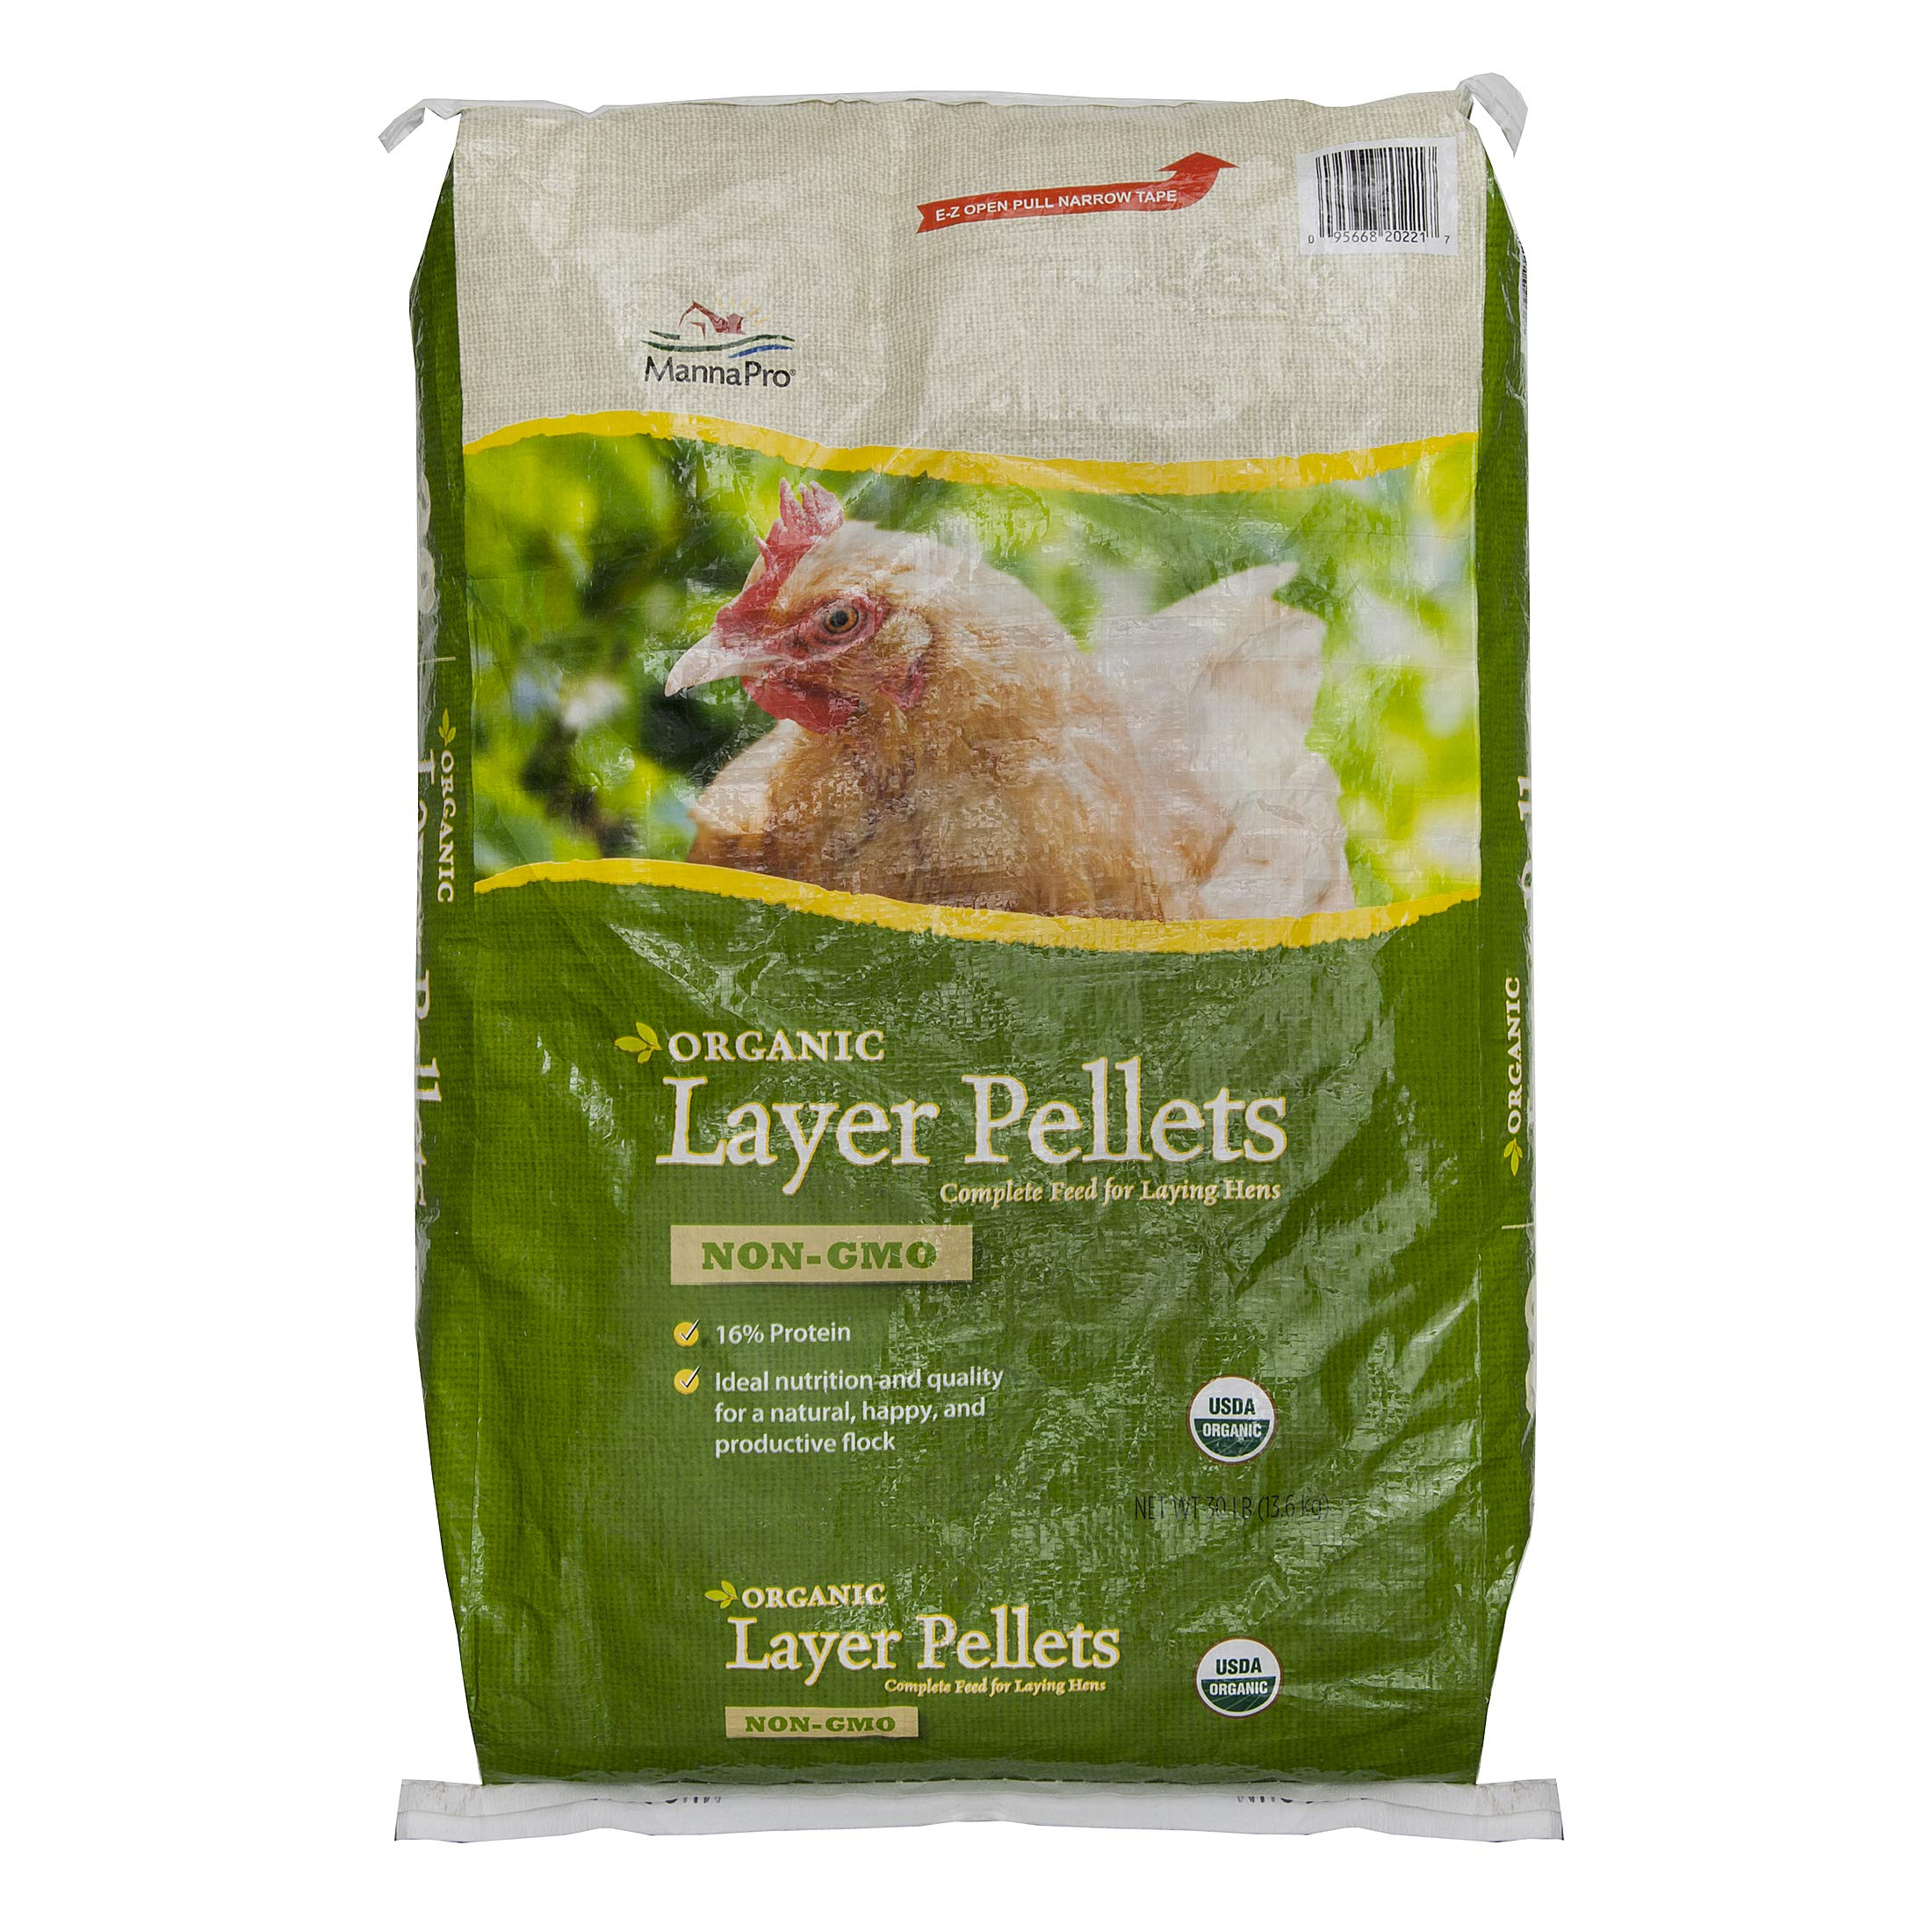 Manna Pro Layer Pellets for Chickens|Non-GMO & Organic Feed for Laying Hens|30 Pounds by Manna Pro